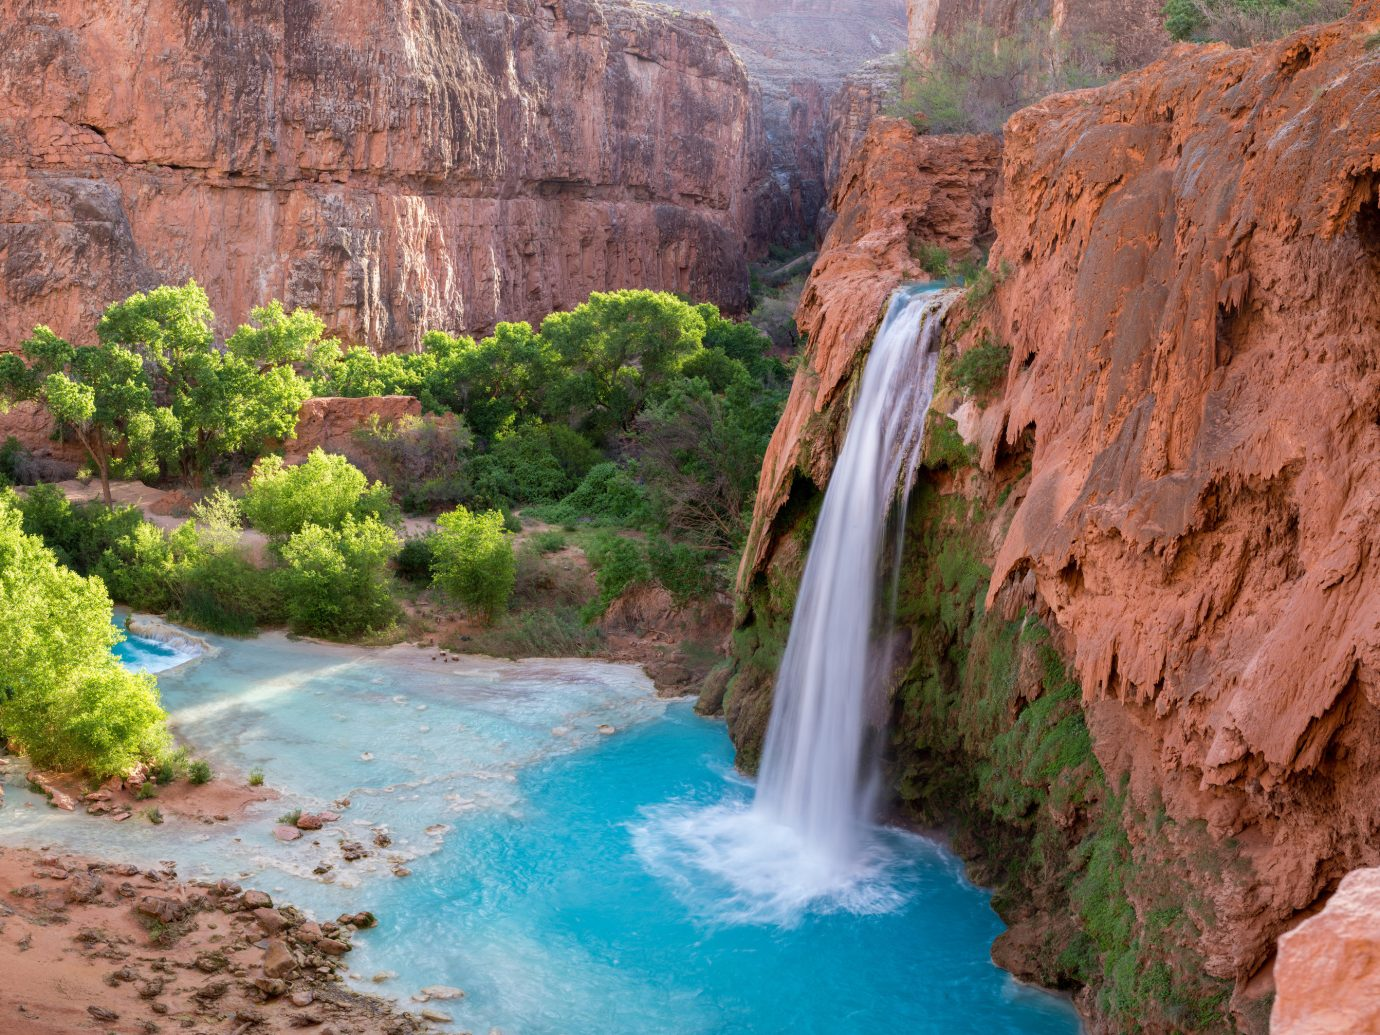 Hotels Natural wonders Scenic views Trip Ideas valley mountain canyon Nature rock outdoor landform geographical feature body of water River wadi rocky water feature cliff Waterfall terrain formation stone